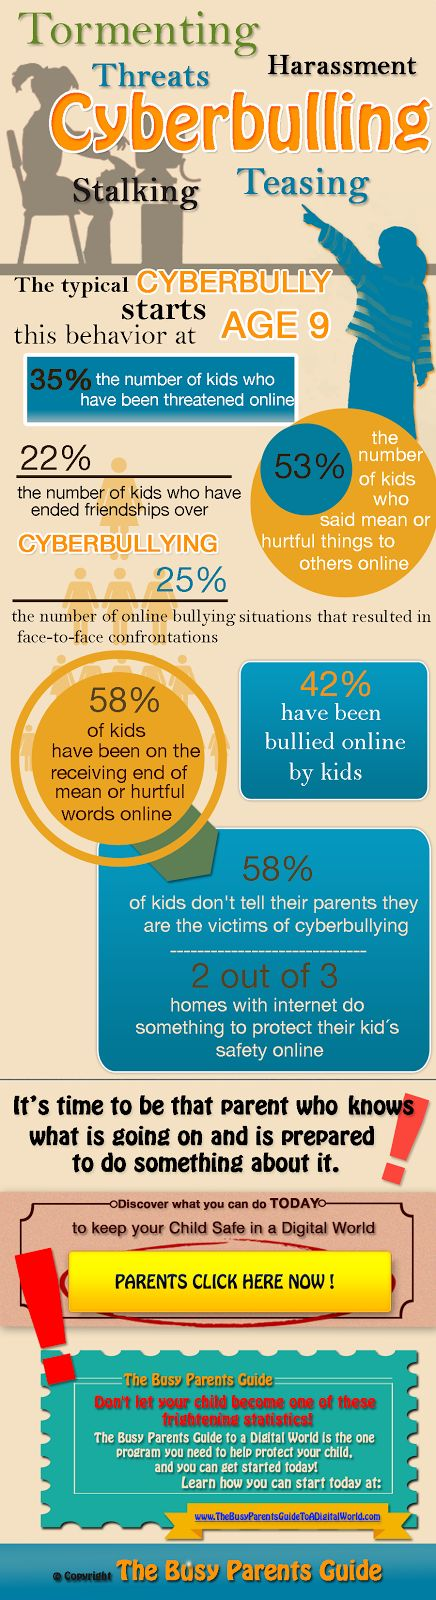 The Typical #Cyberbully #Internetsafety: